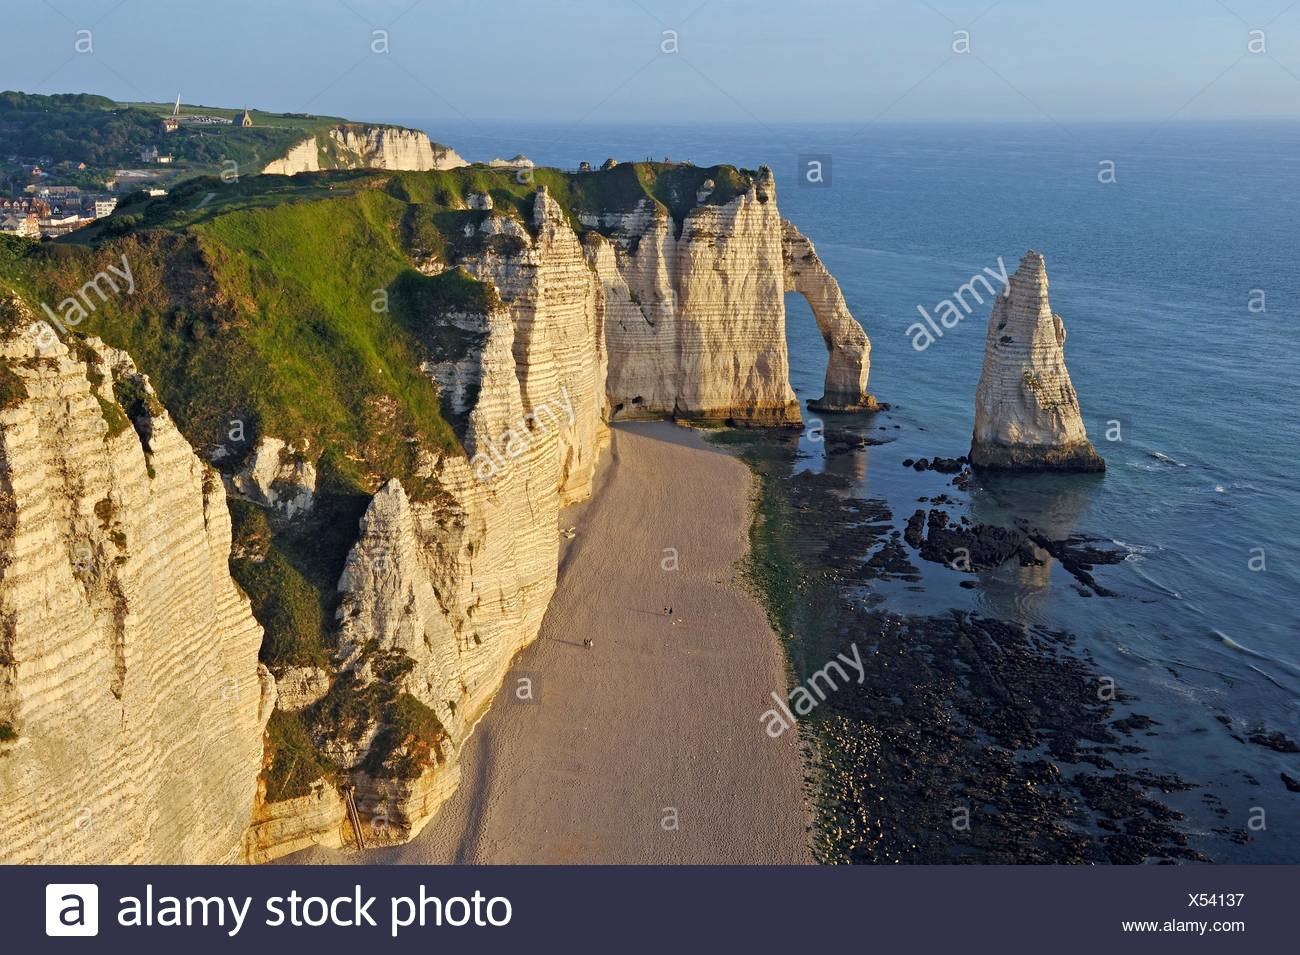 chalk cliffs with arch and ´´l´Aiguille´´ (the Needle), Etretat, Seine-Maritime department, Normandie region, France, Europe. - Stock Image